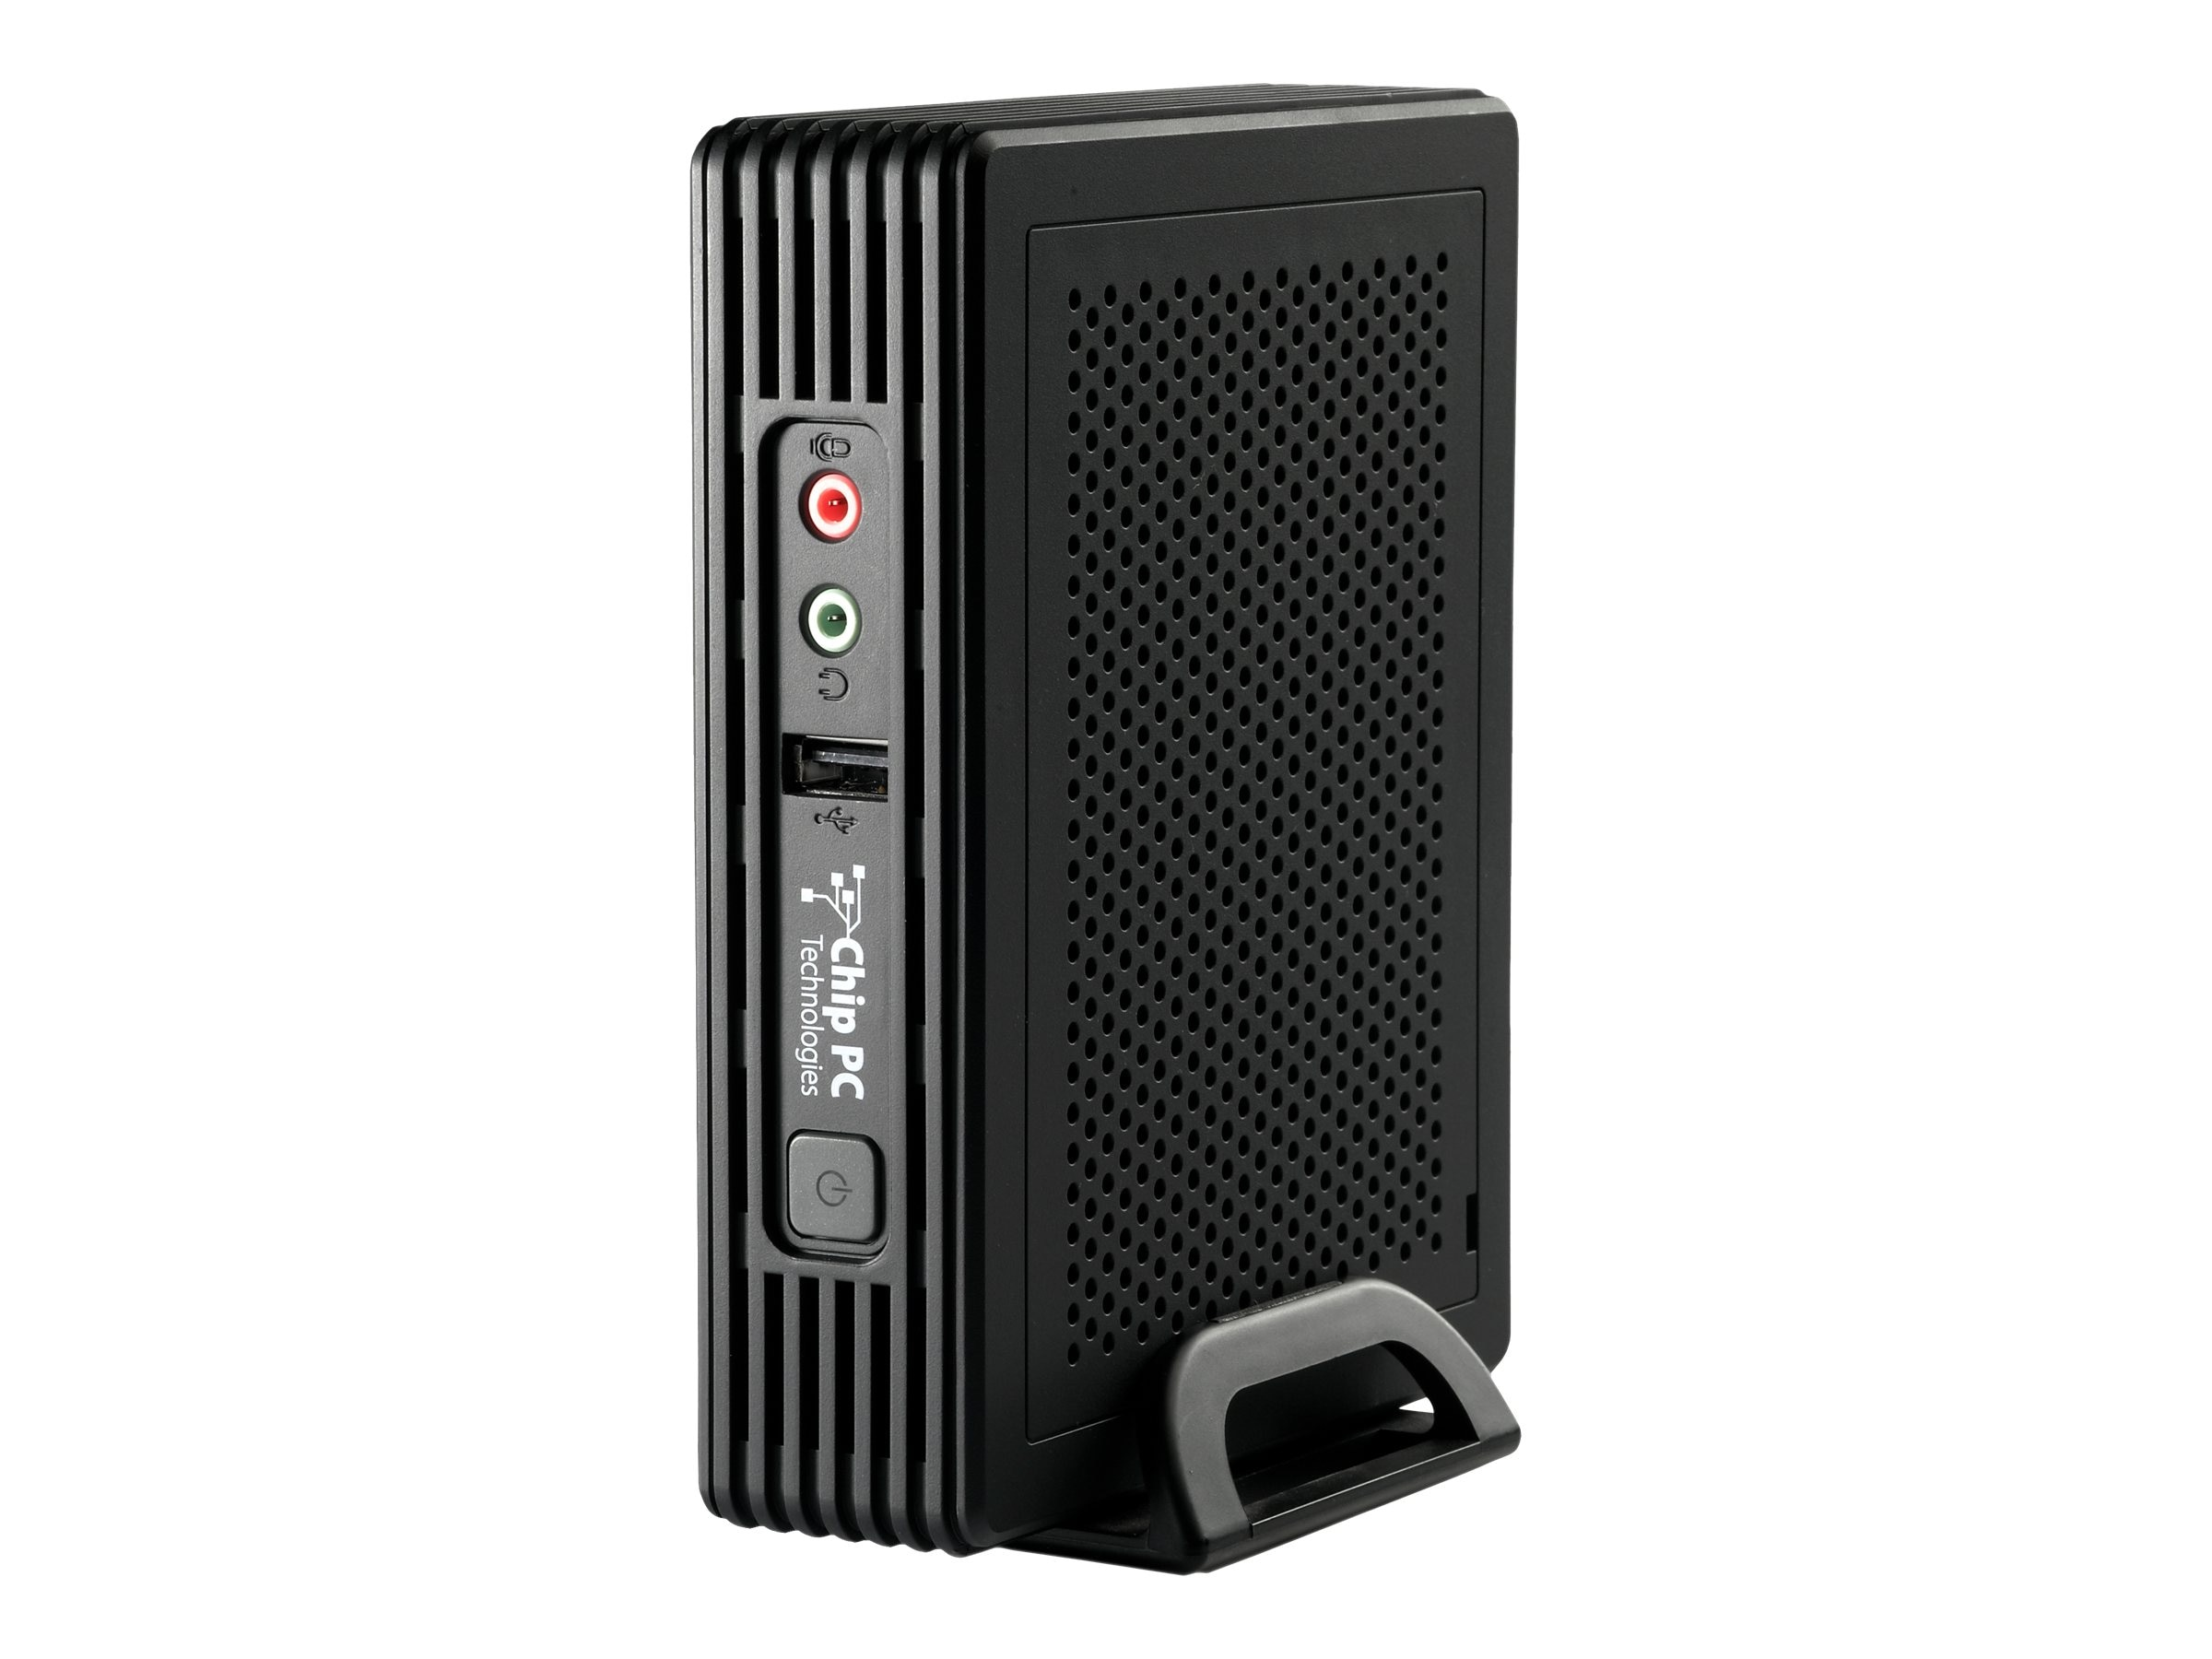 Chip PC Ex PC Thin Client AMD Fusion T40N 1.0GHz 2GB RAM 8GB Flash GbE, CPN06340, 16015207, Thin Client Hardware